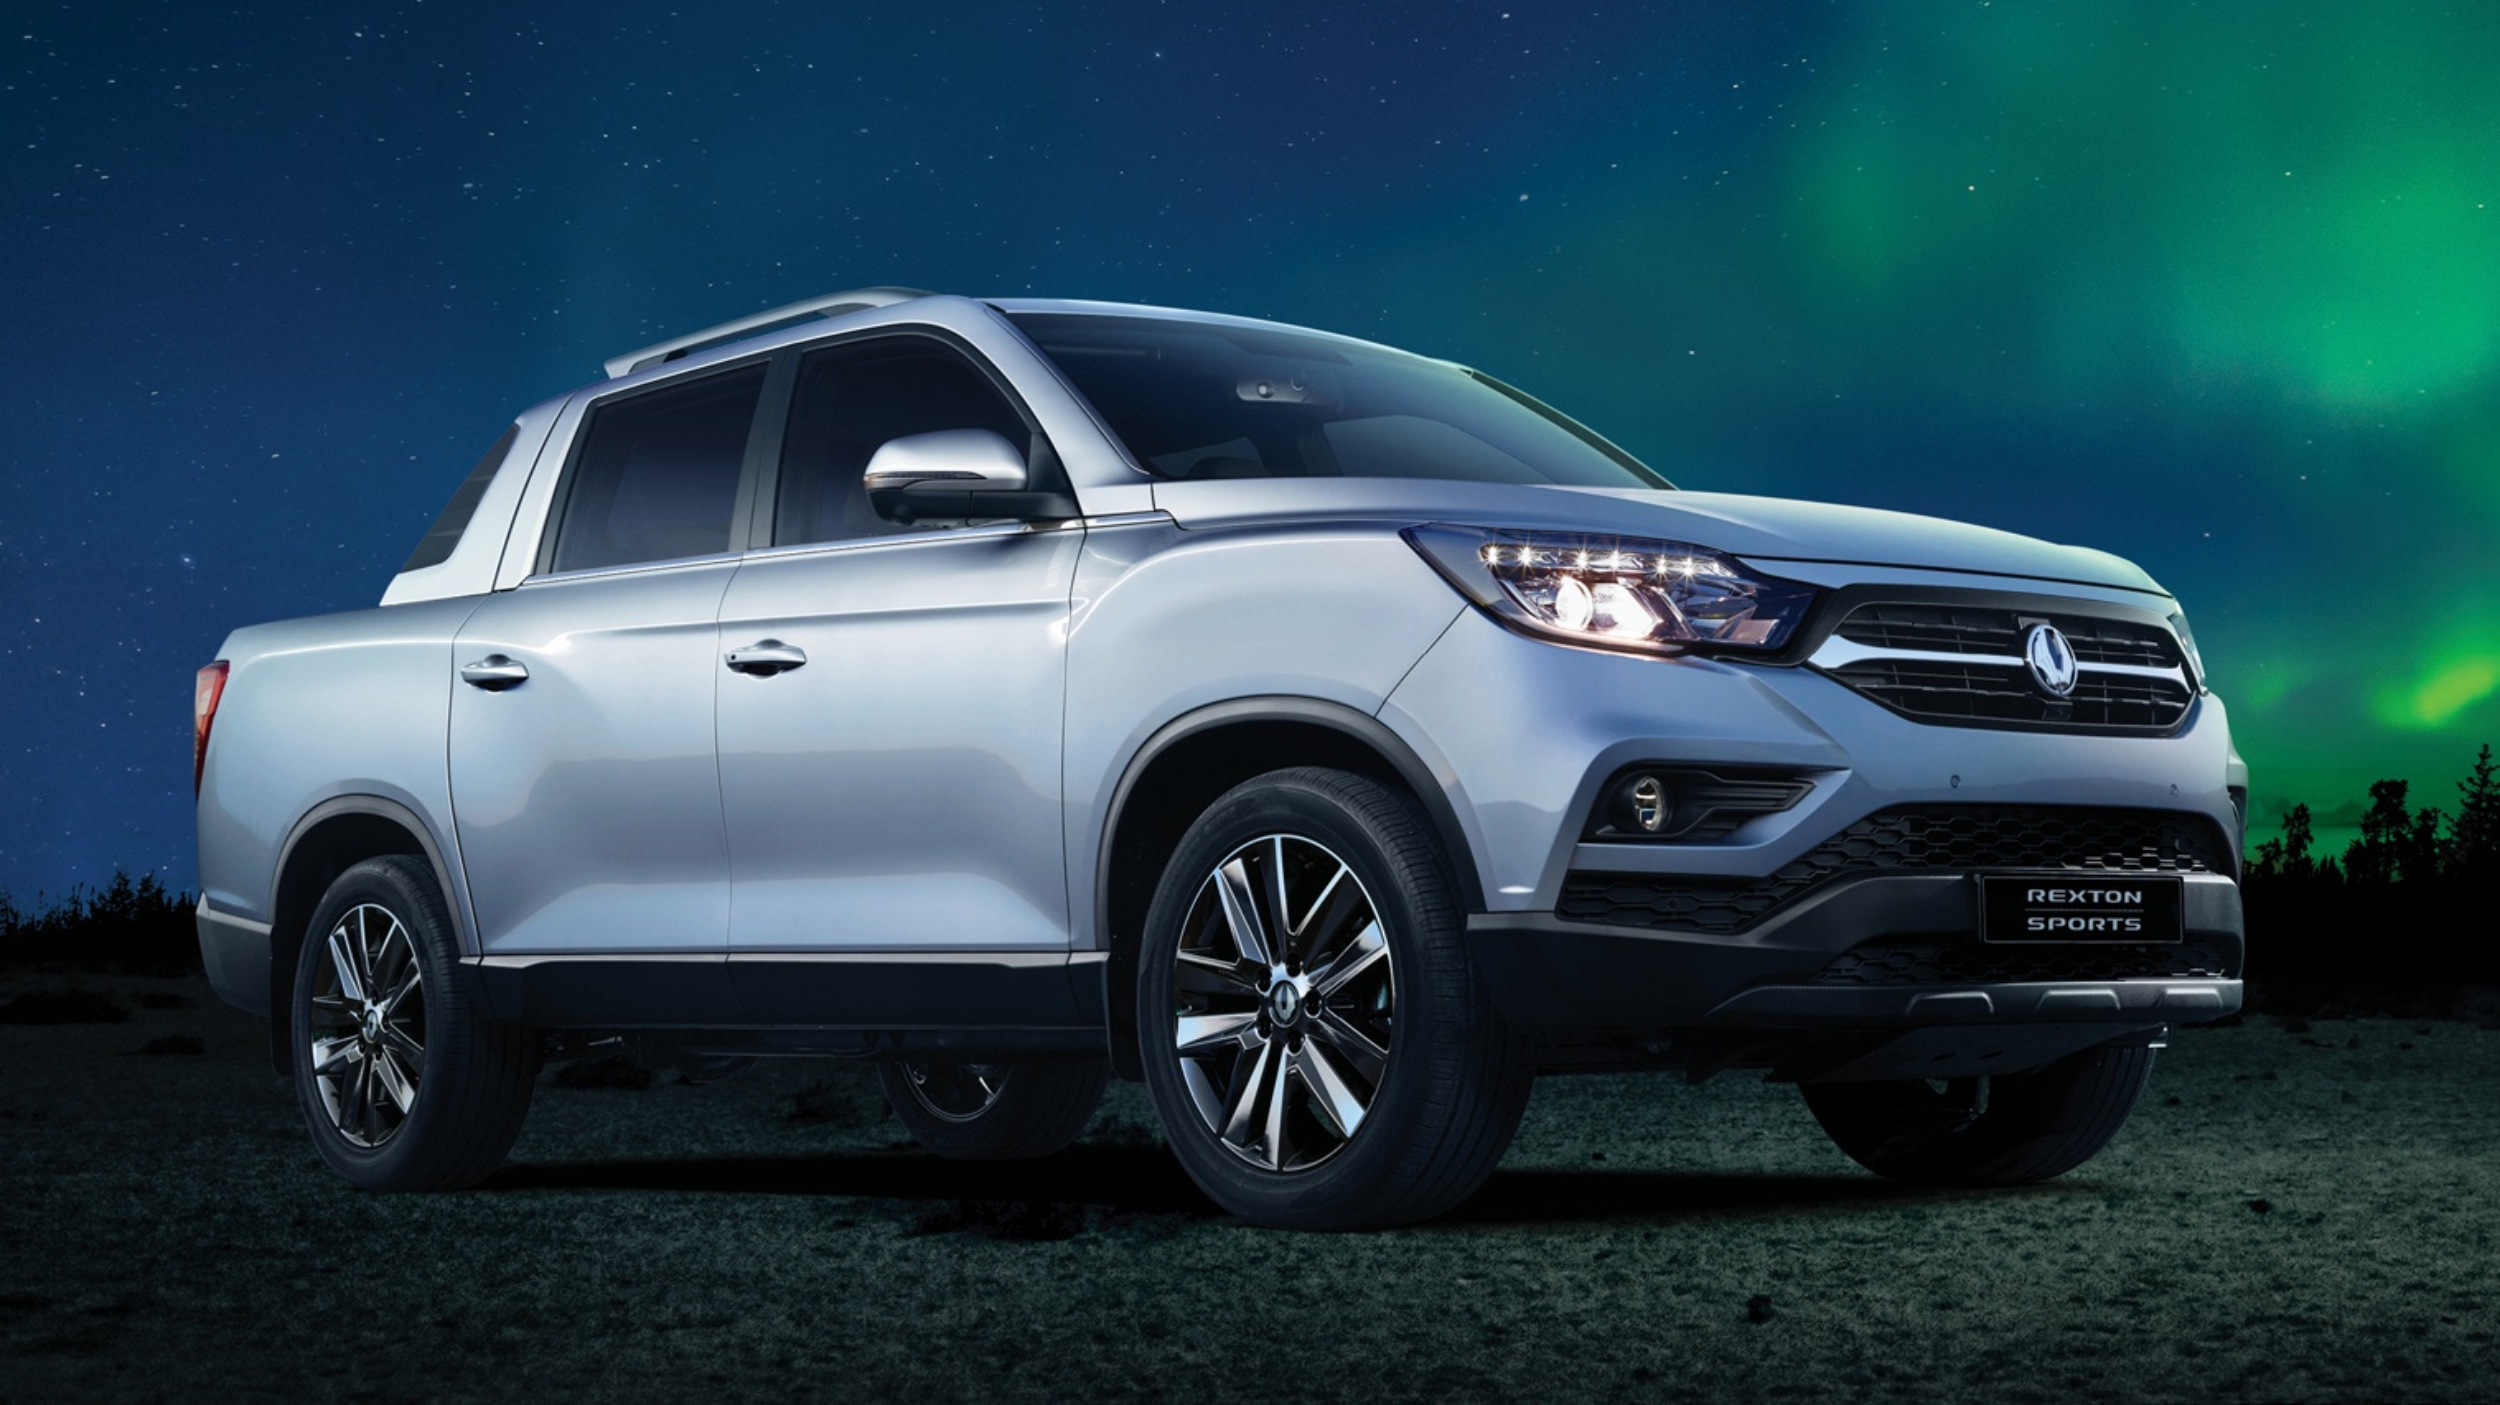 News 2018 Ssangyong Rexton Sports Ute Breaks Cover